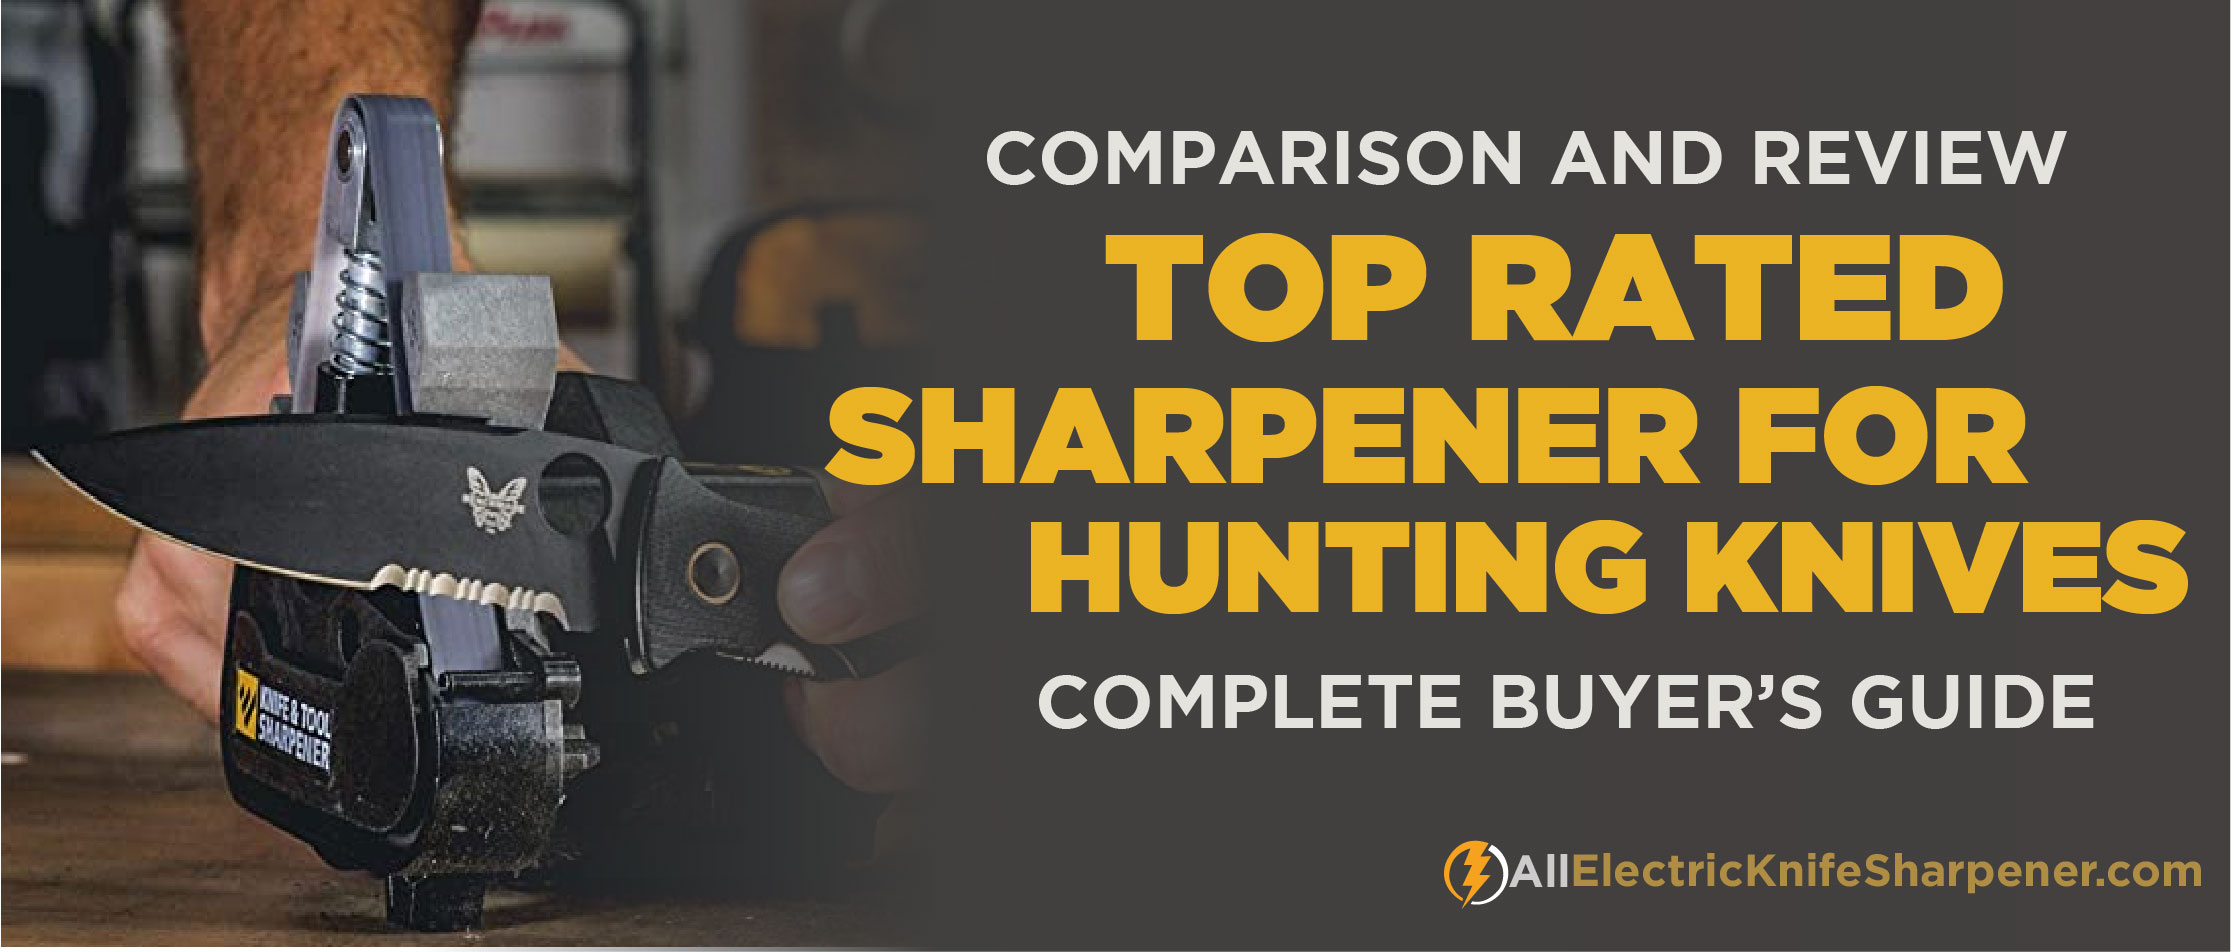 Best Electric Knife Sharpener for Hunting Knives